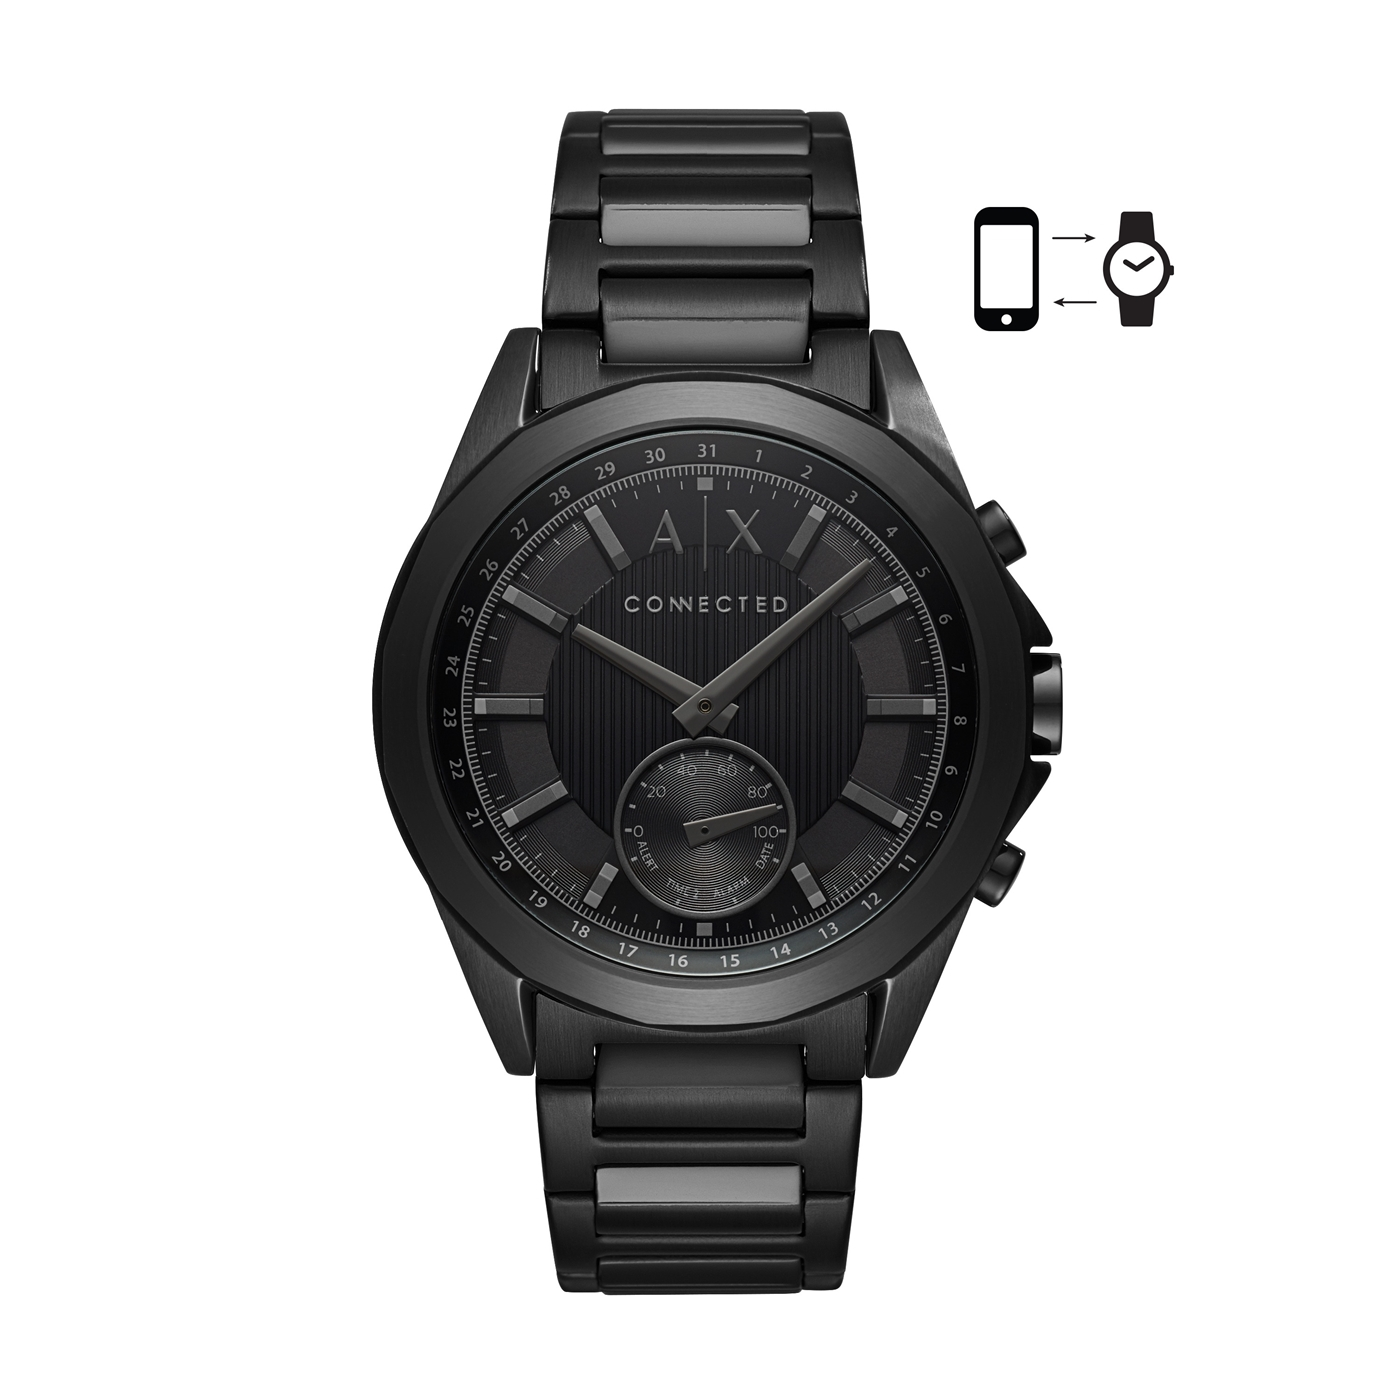 Bilde av Armani Exchange Connected watch AXT1007